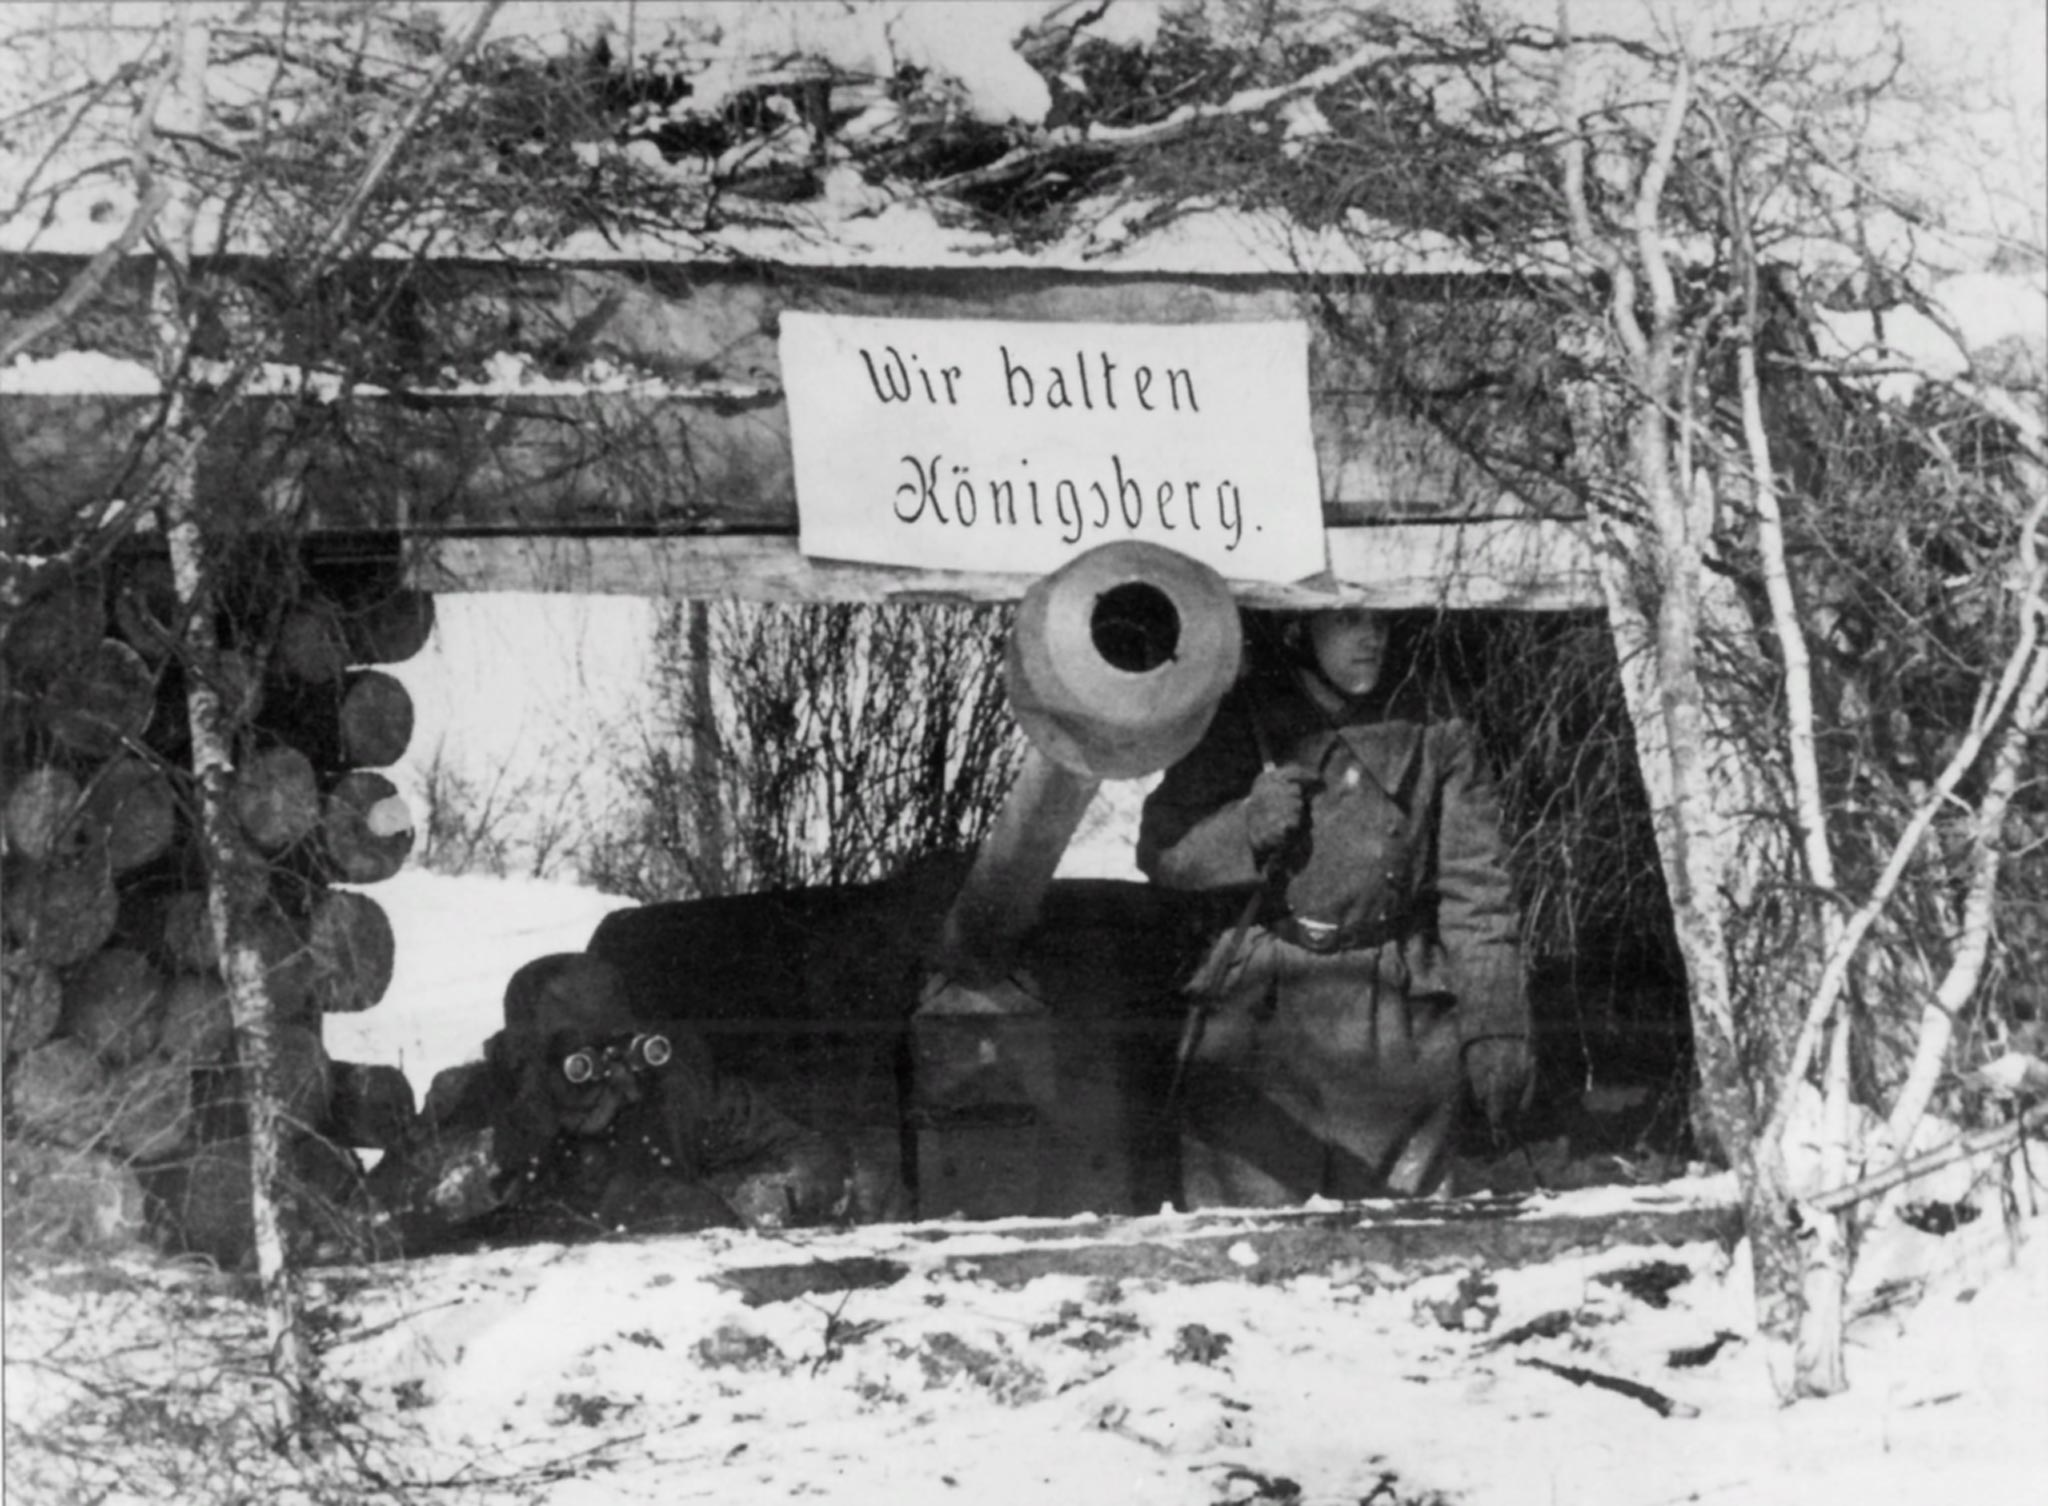 PaK-40 anti-tank gun in a defensive position in the Battle of